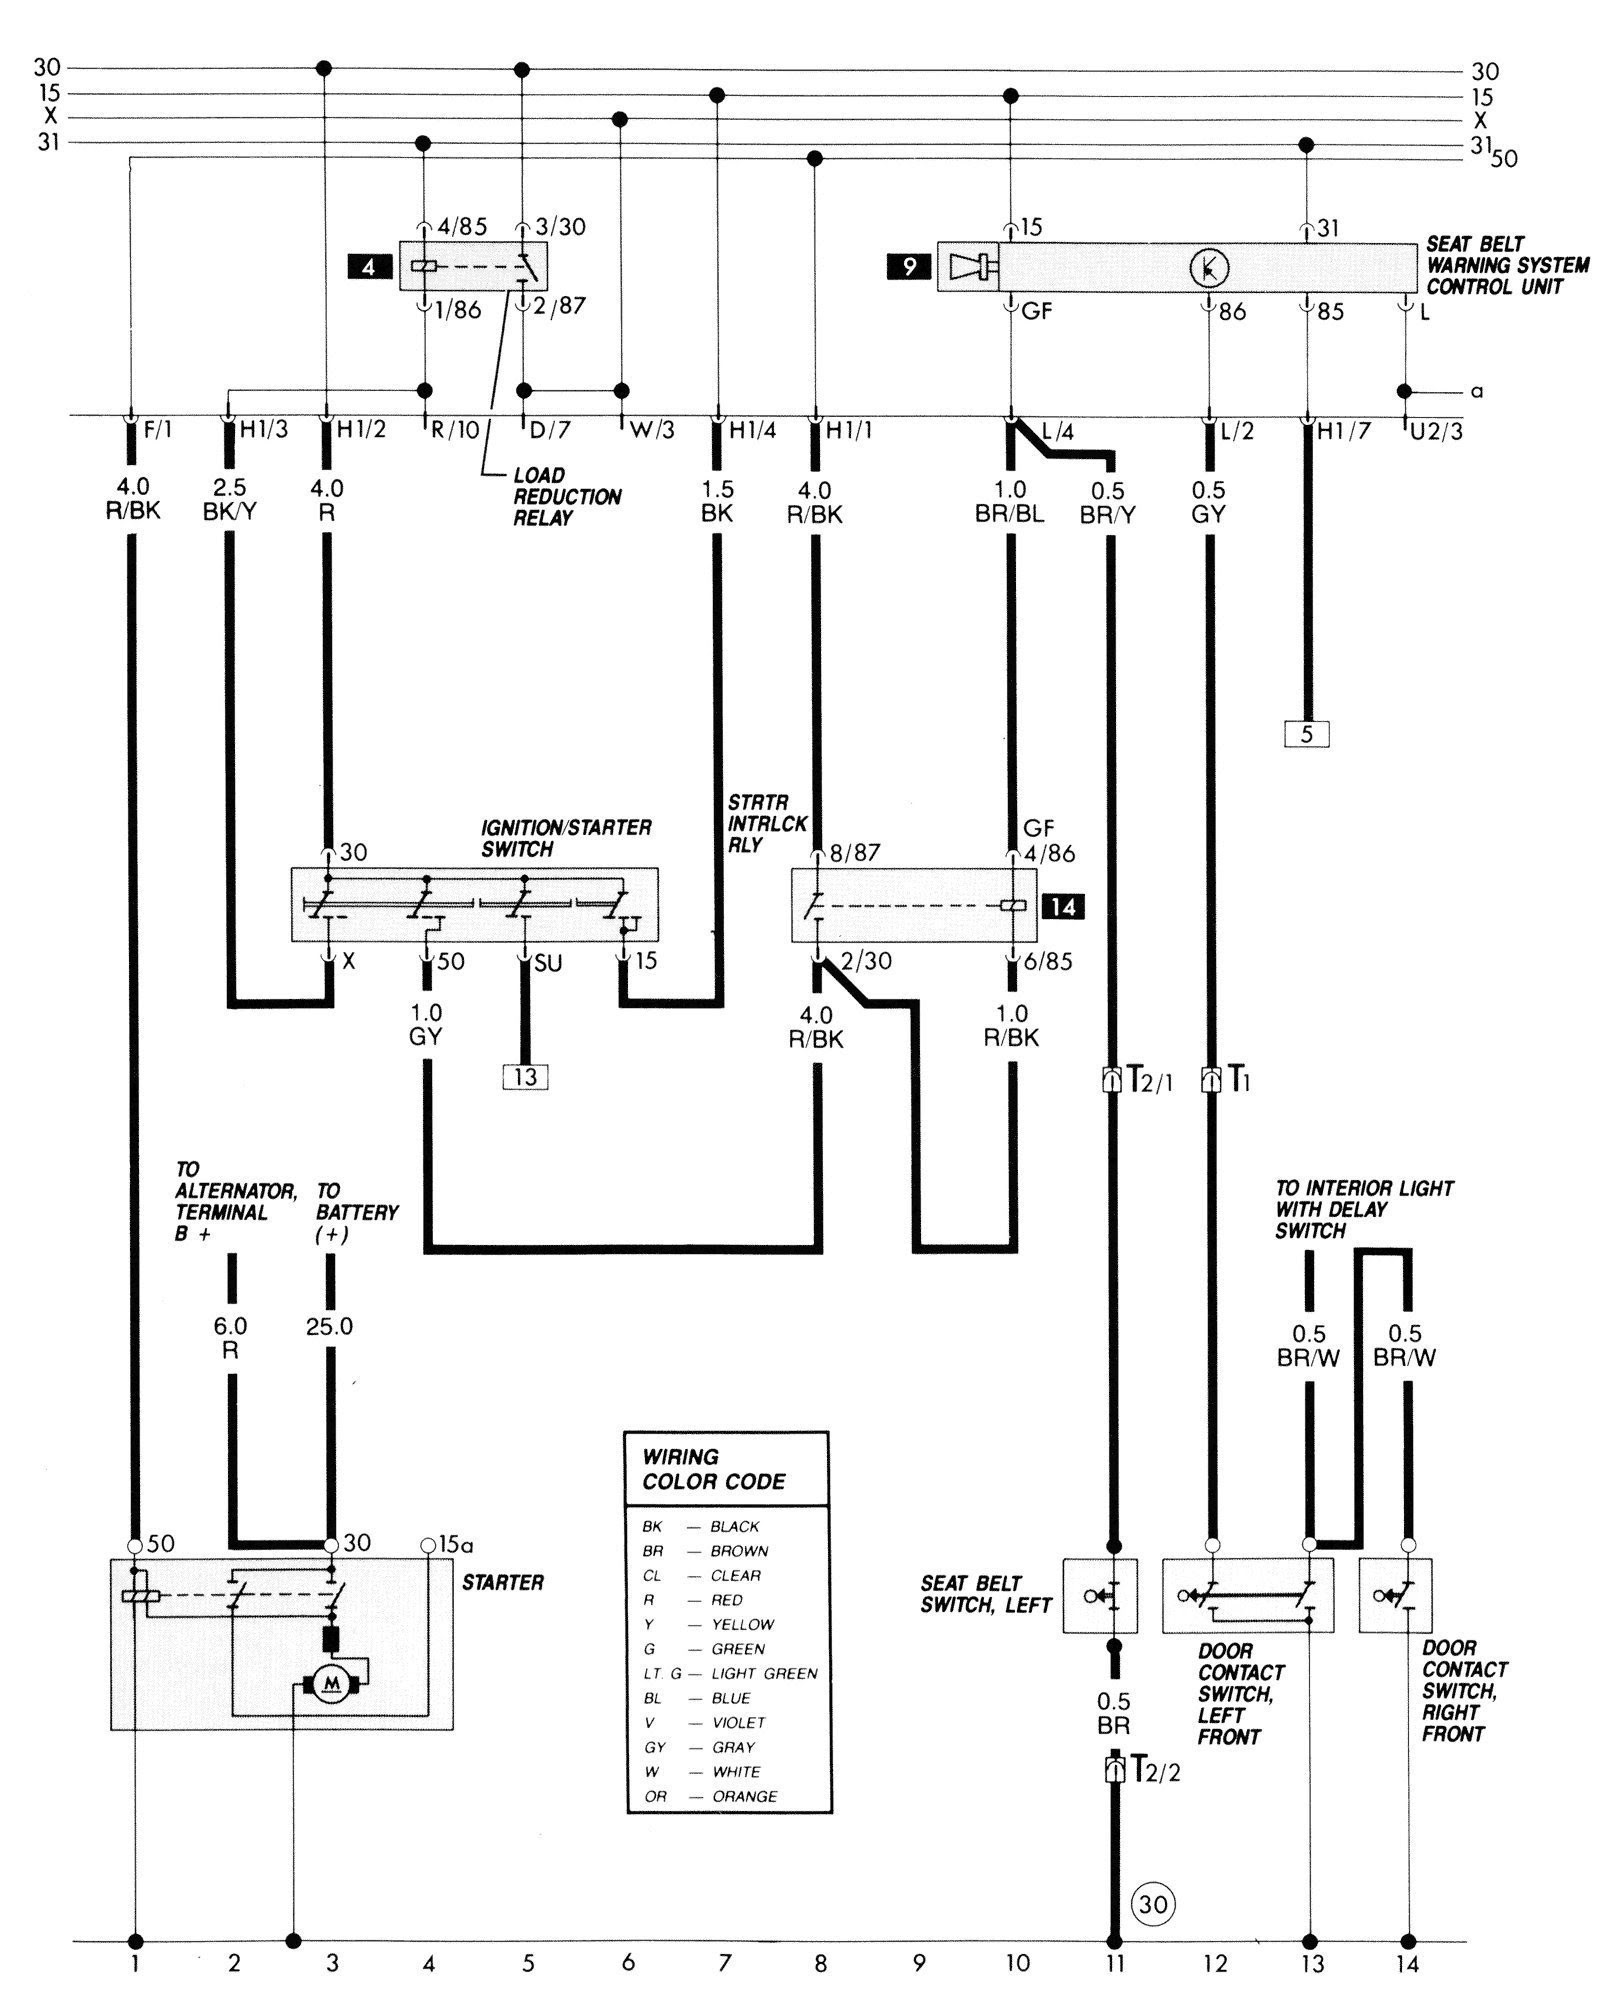 1999 Volkswagen Engine Diagram Wiring Diagram Loose Local A Loose Local A Maceratadoc It